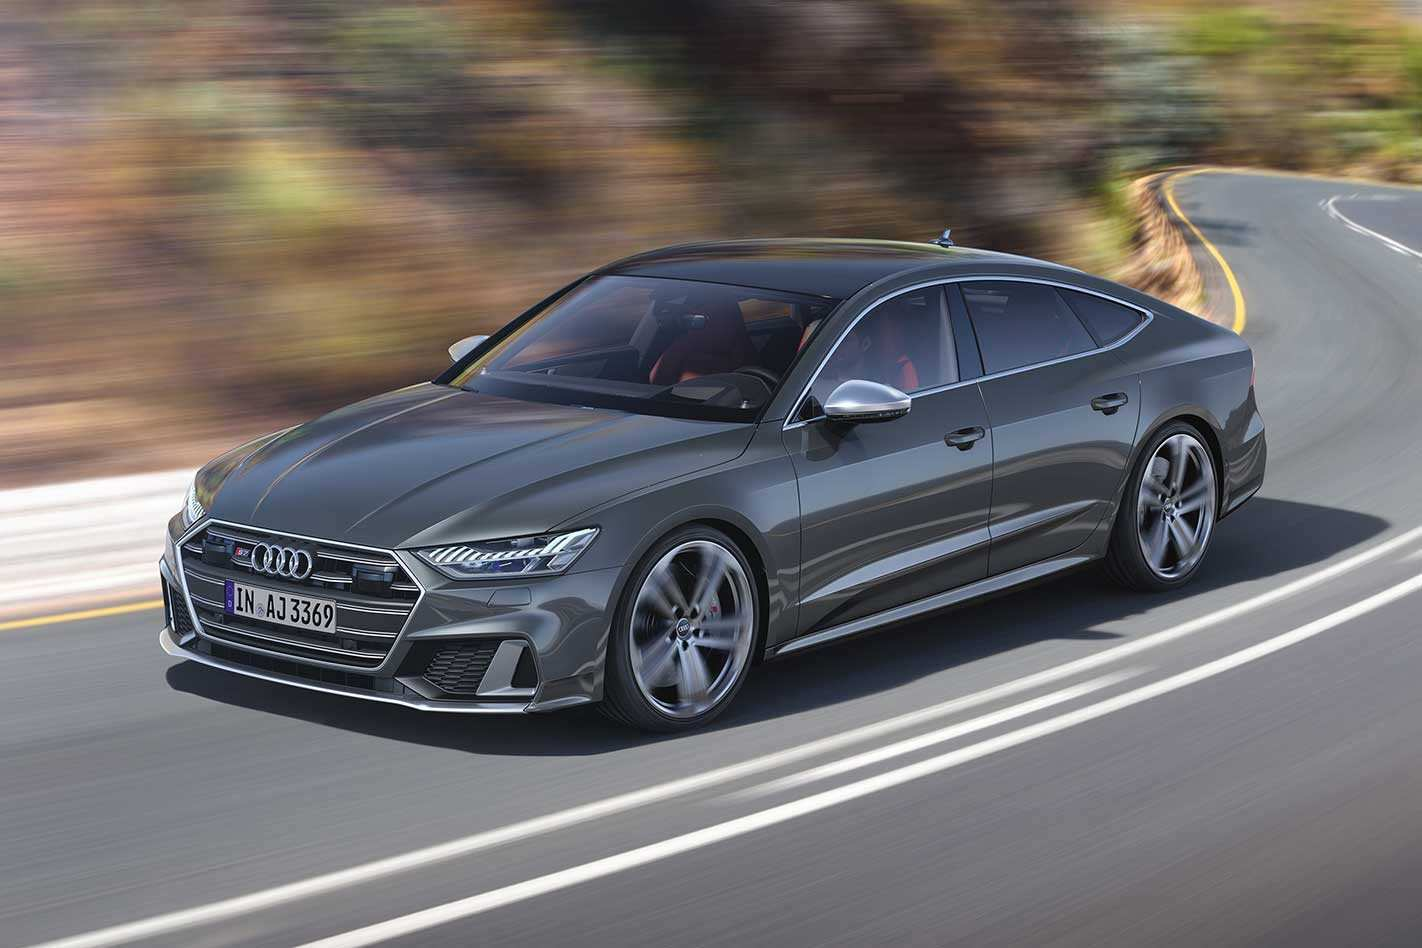 99 All New 2020 Audi Cars Pictures